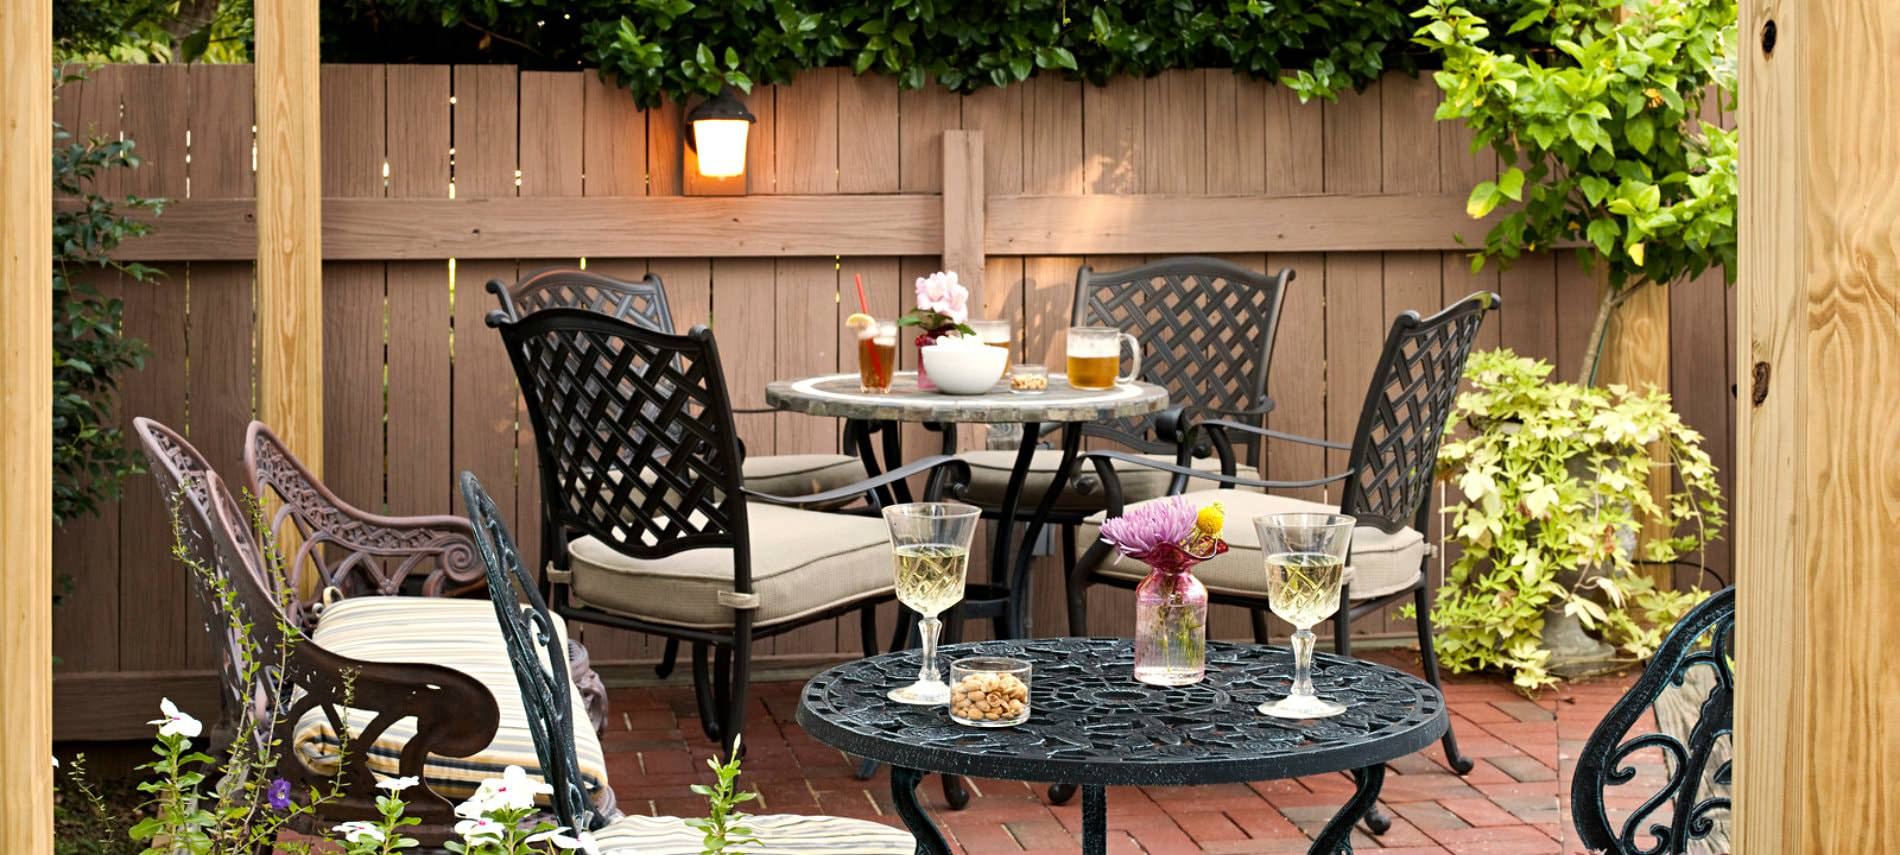 Porch area decorated with dark cast iron furniture, red brick flooring, light brown fencing, and beige cushions; tables coveredin delicious drinks and snacks